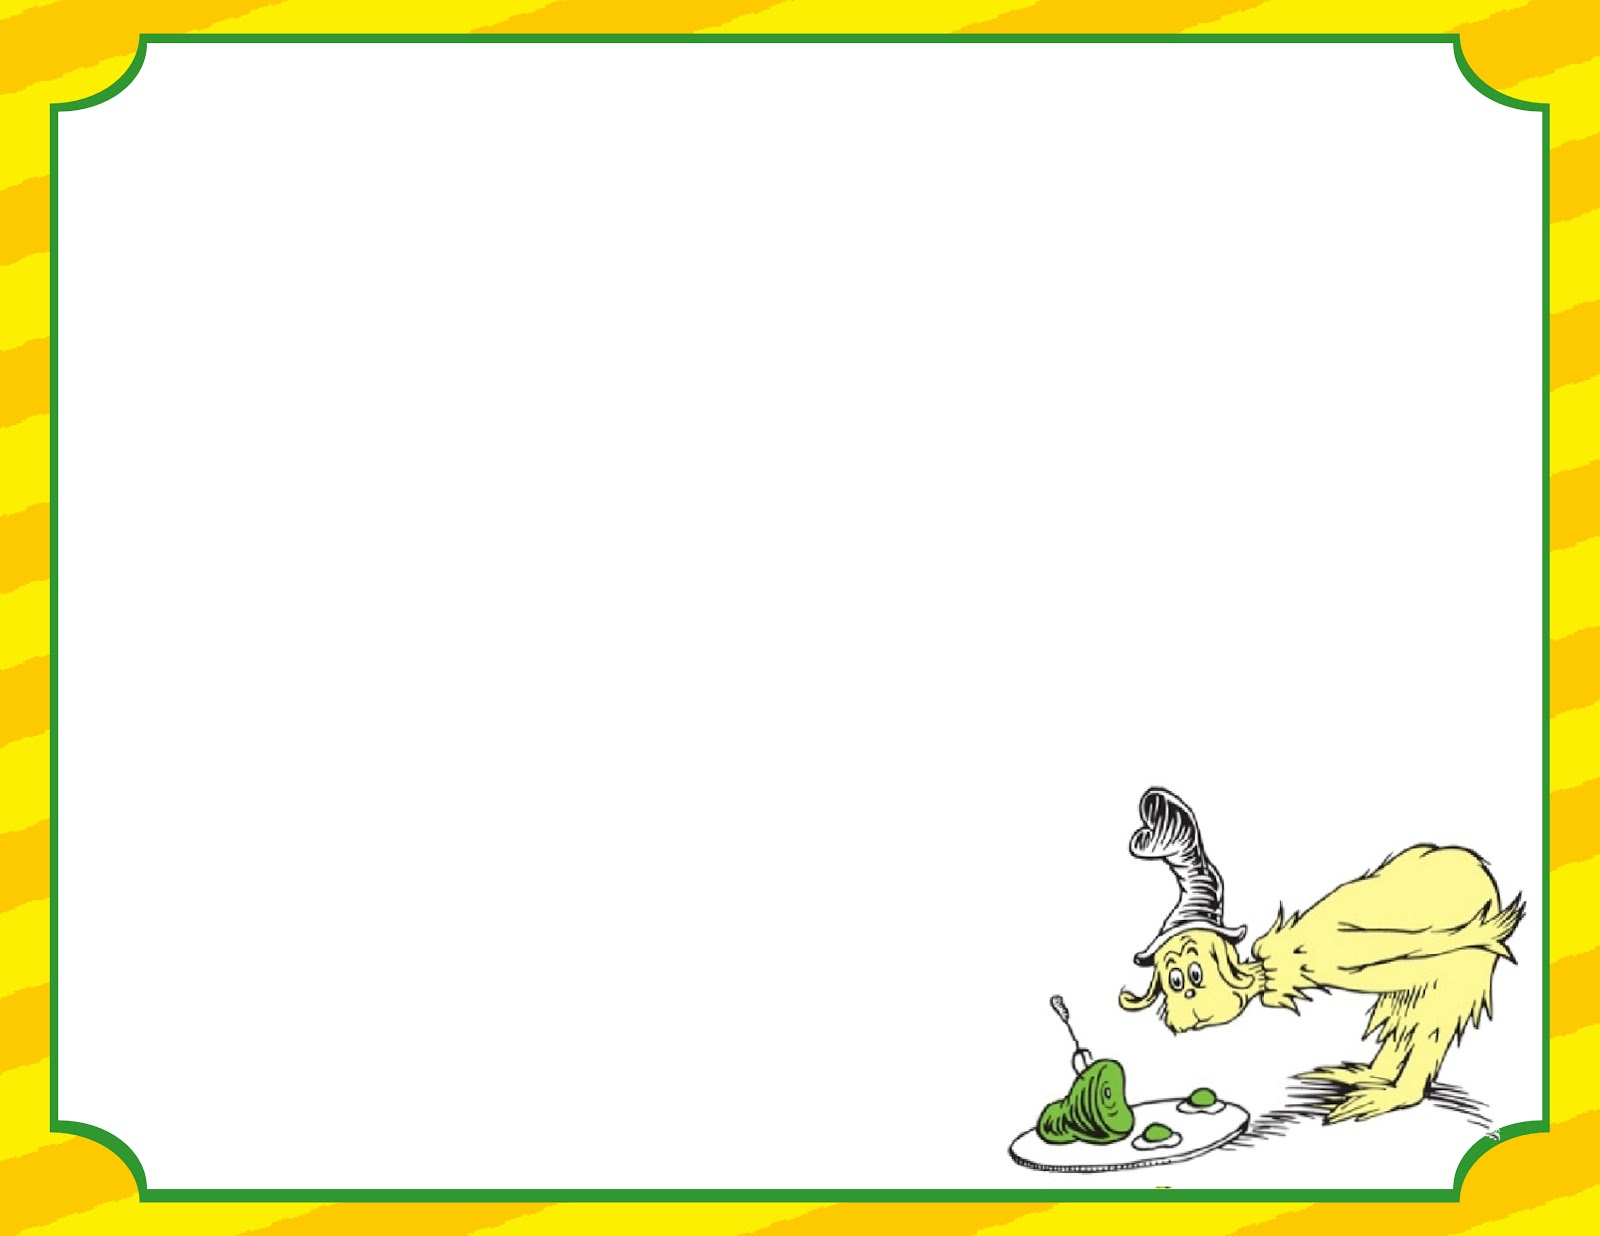 Dr seuss background for powerpoint